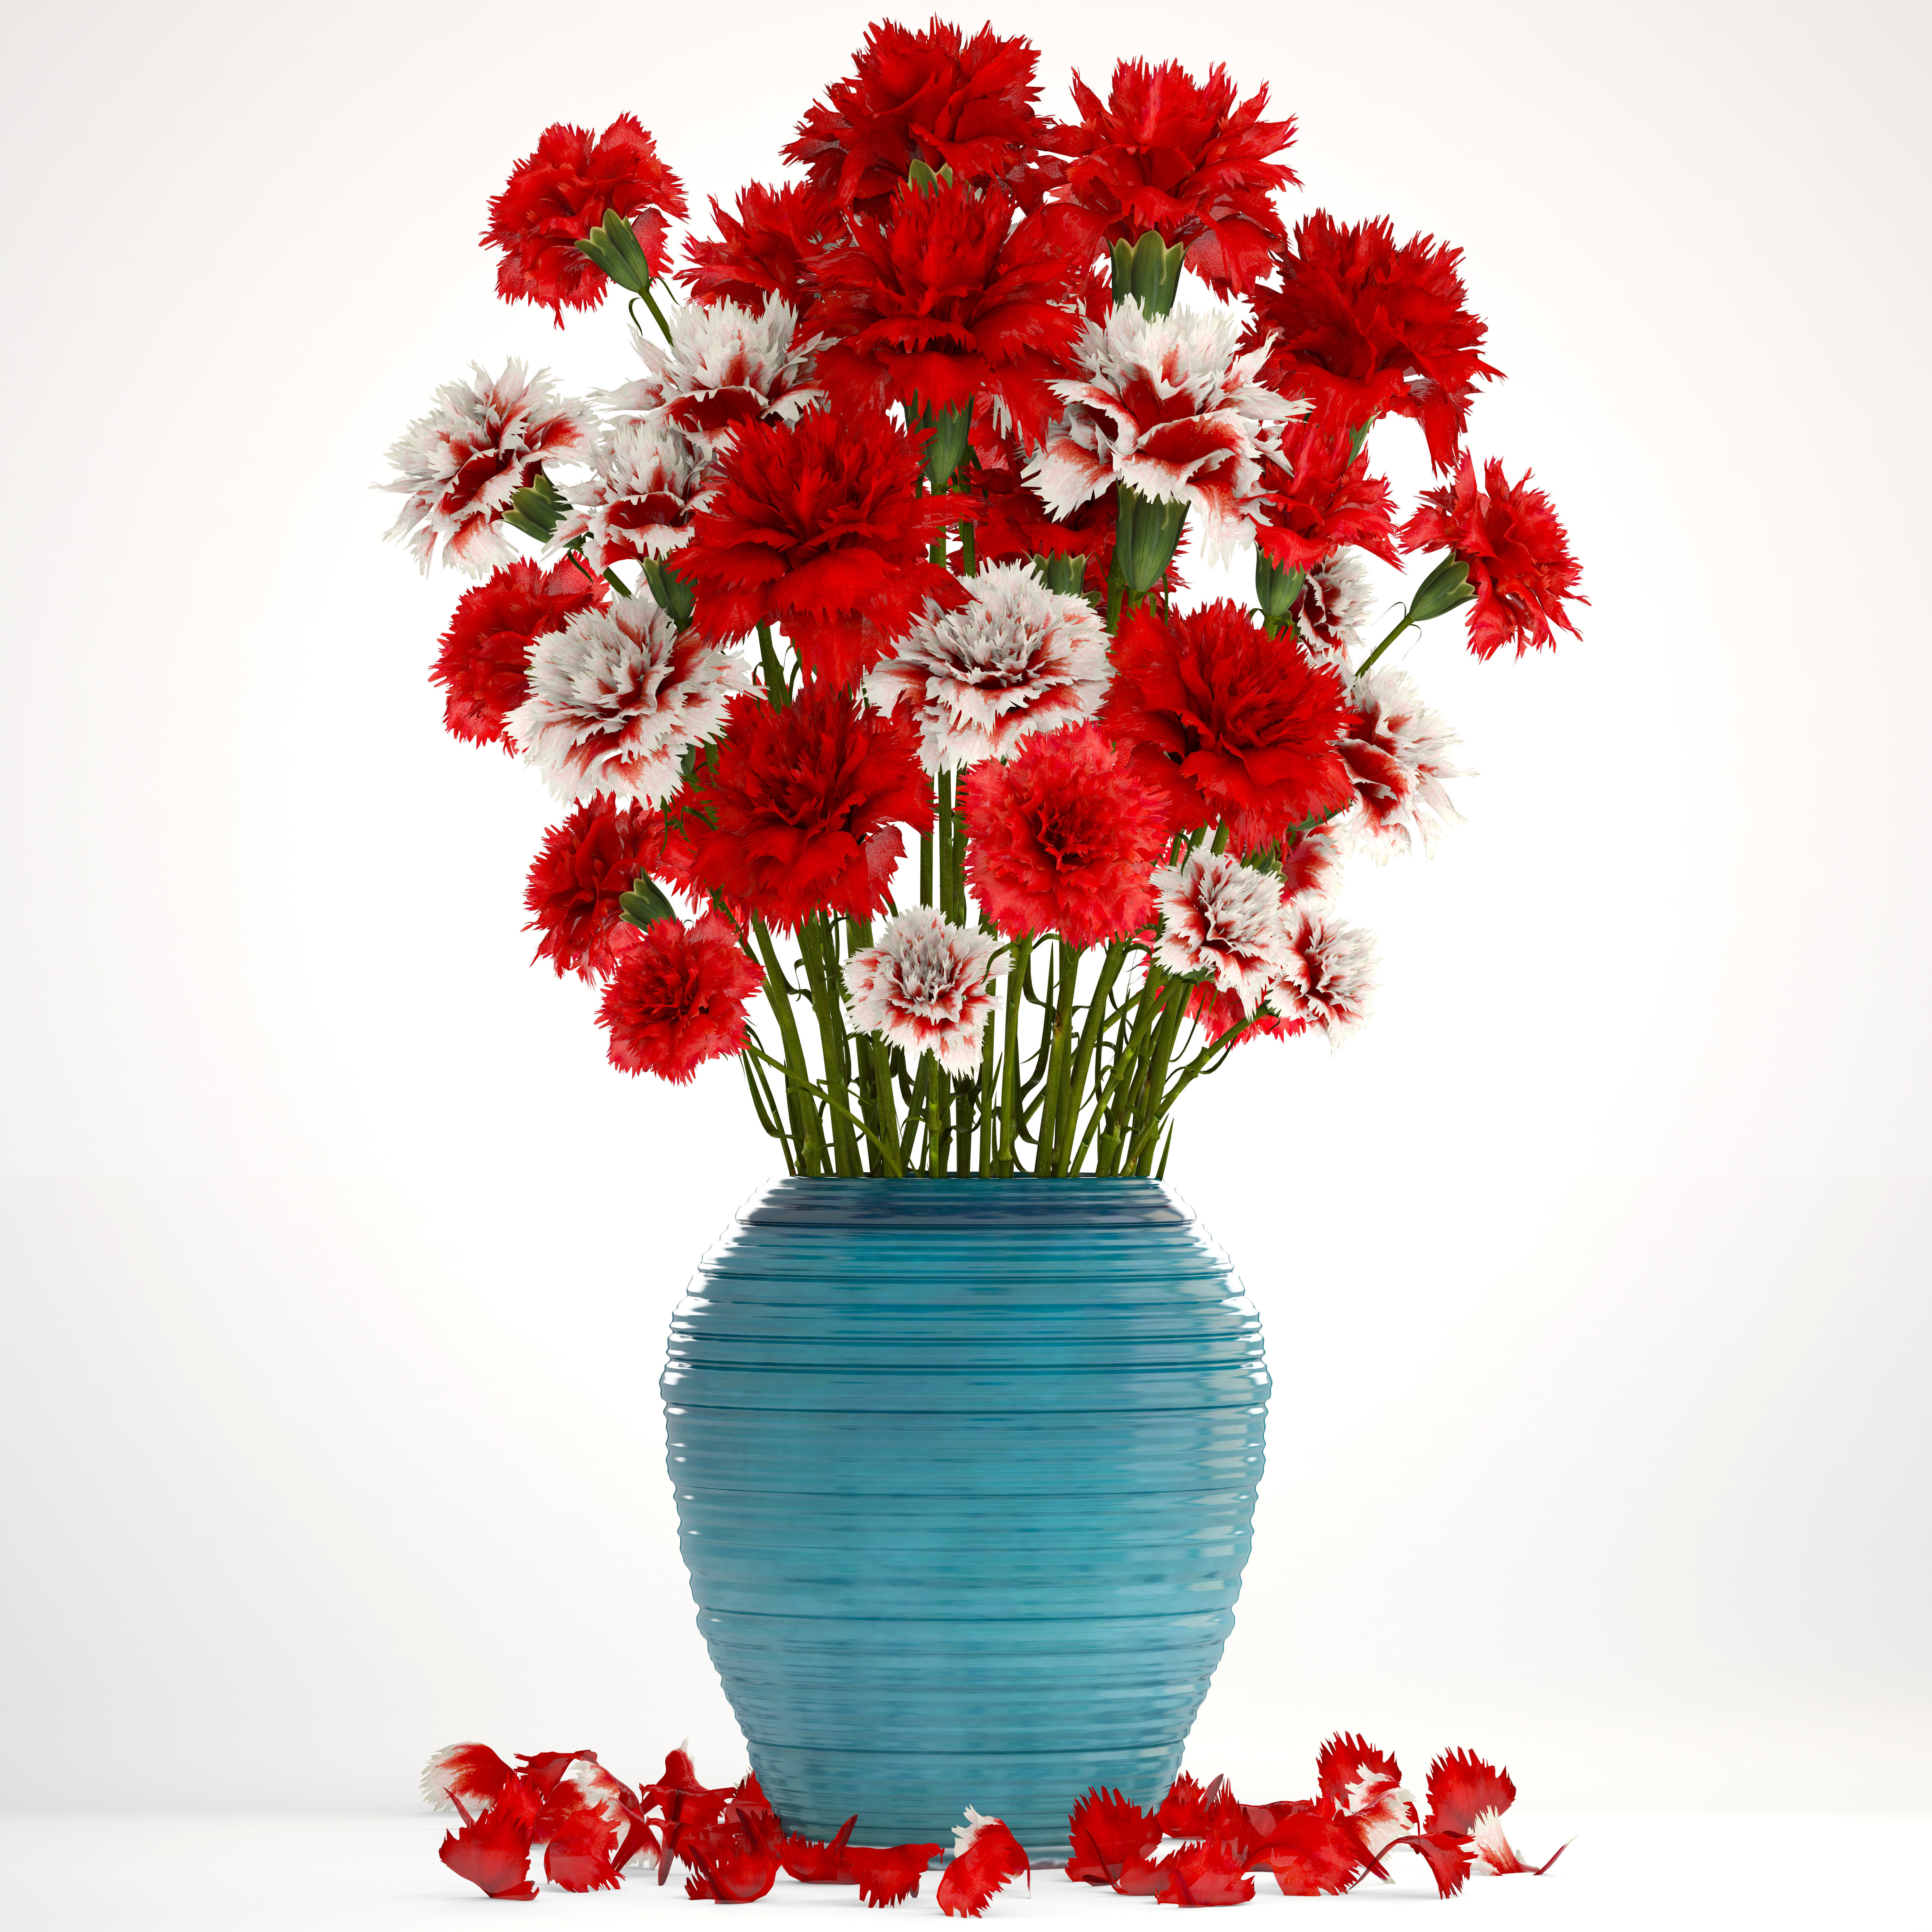 Bouquet Of Flowers Red Carnation 3d Cgtrader